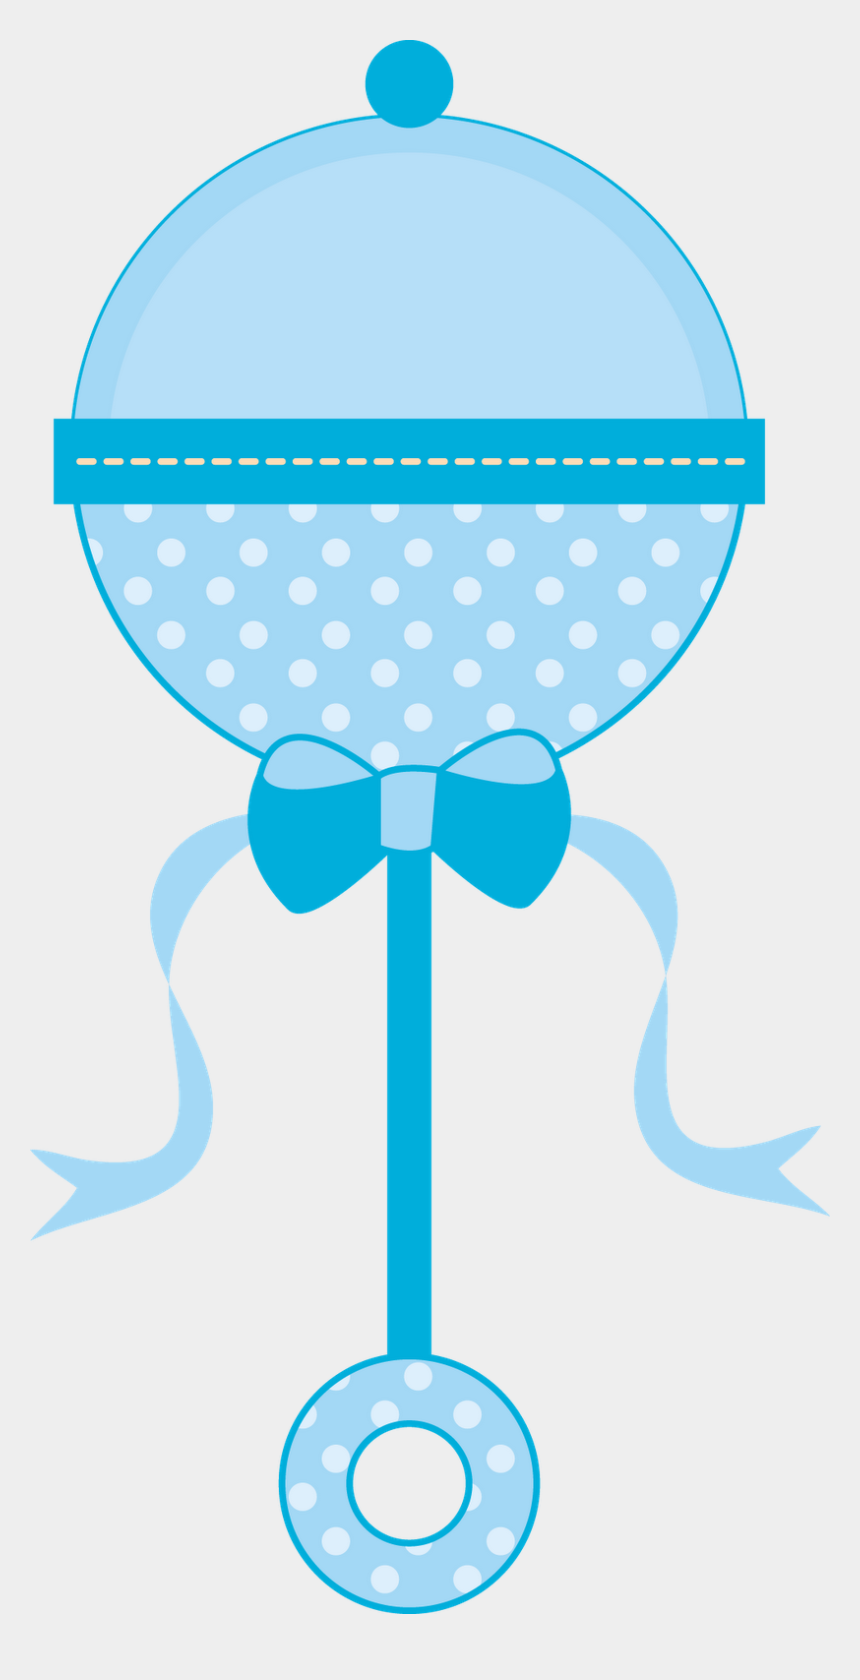 gondola clipart, Cartoons - Clipart Of Sb, Nipples And Besides - Baby Shower Girl Png